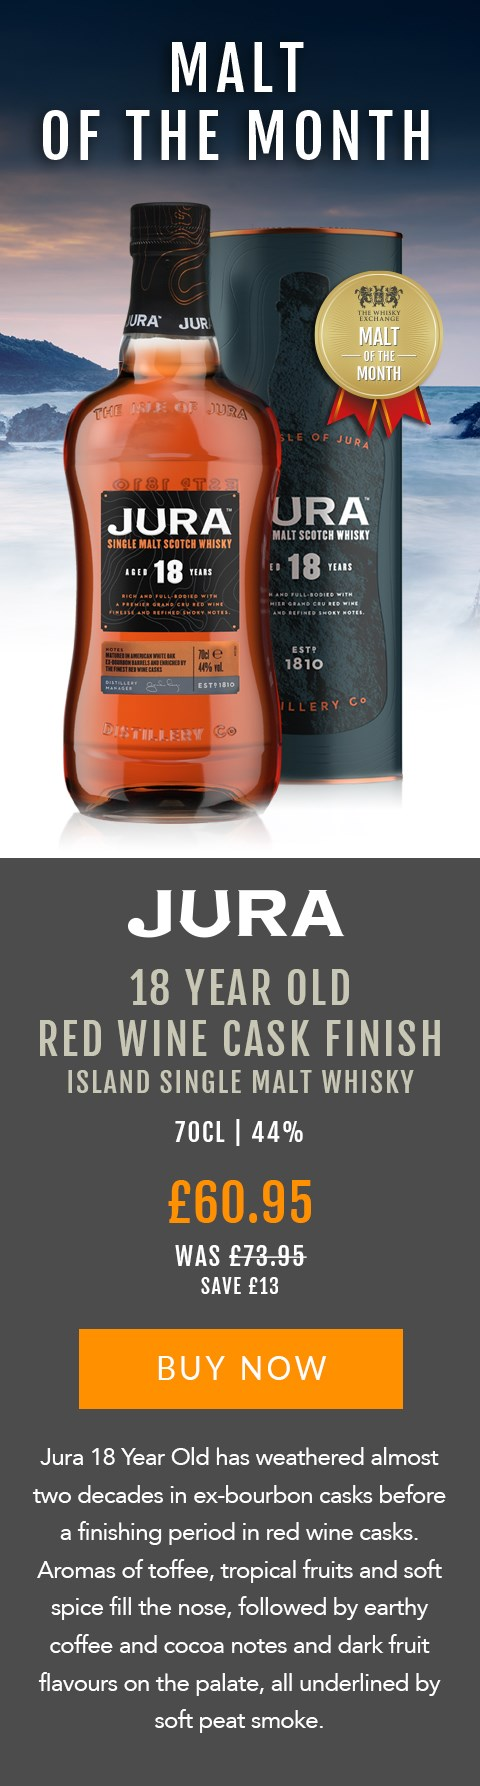 MALT OF THE MONTH  Jura 18 Year Old Red Wine Cask Finish Island Single Malt Whisky  70cl | 44%  Now £60.95 (Was £73.95) Save £13  Jura 18 Year Old has weathered almost two decades in ex-bourbon casks before a finishing period in red wine casks. Aromas of toffee, tropical fruits and soft spice fill the nose, followed by earthy coffee and cocoa notes and dark fruit flavours on the palate, all underlined by soft peat smoke.